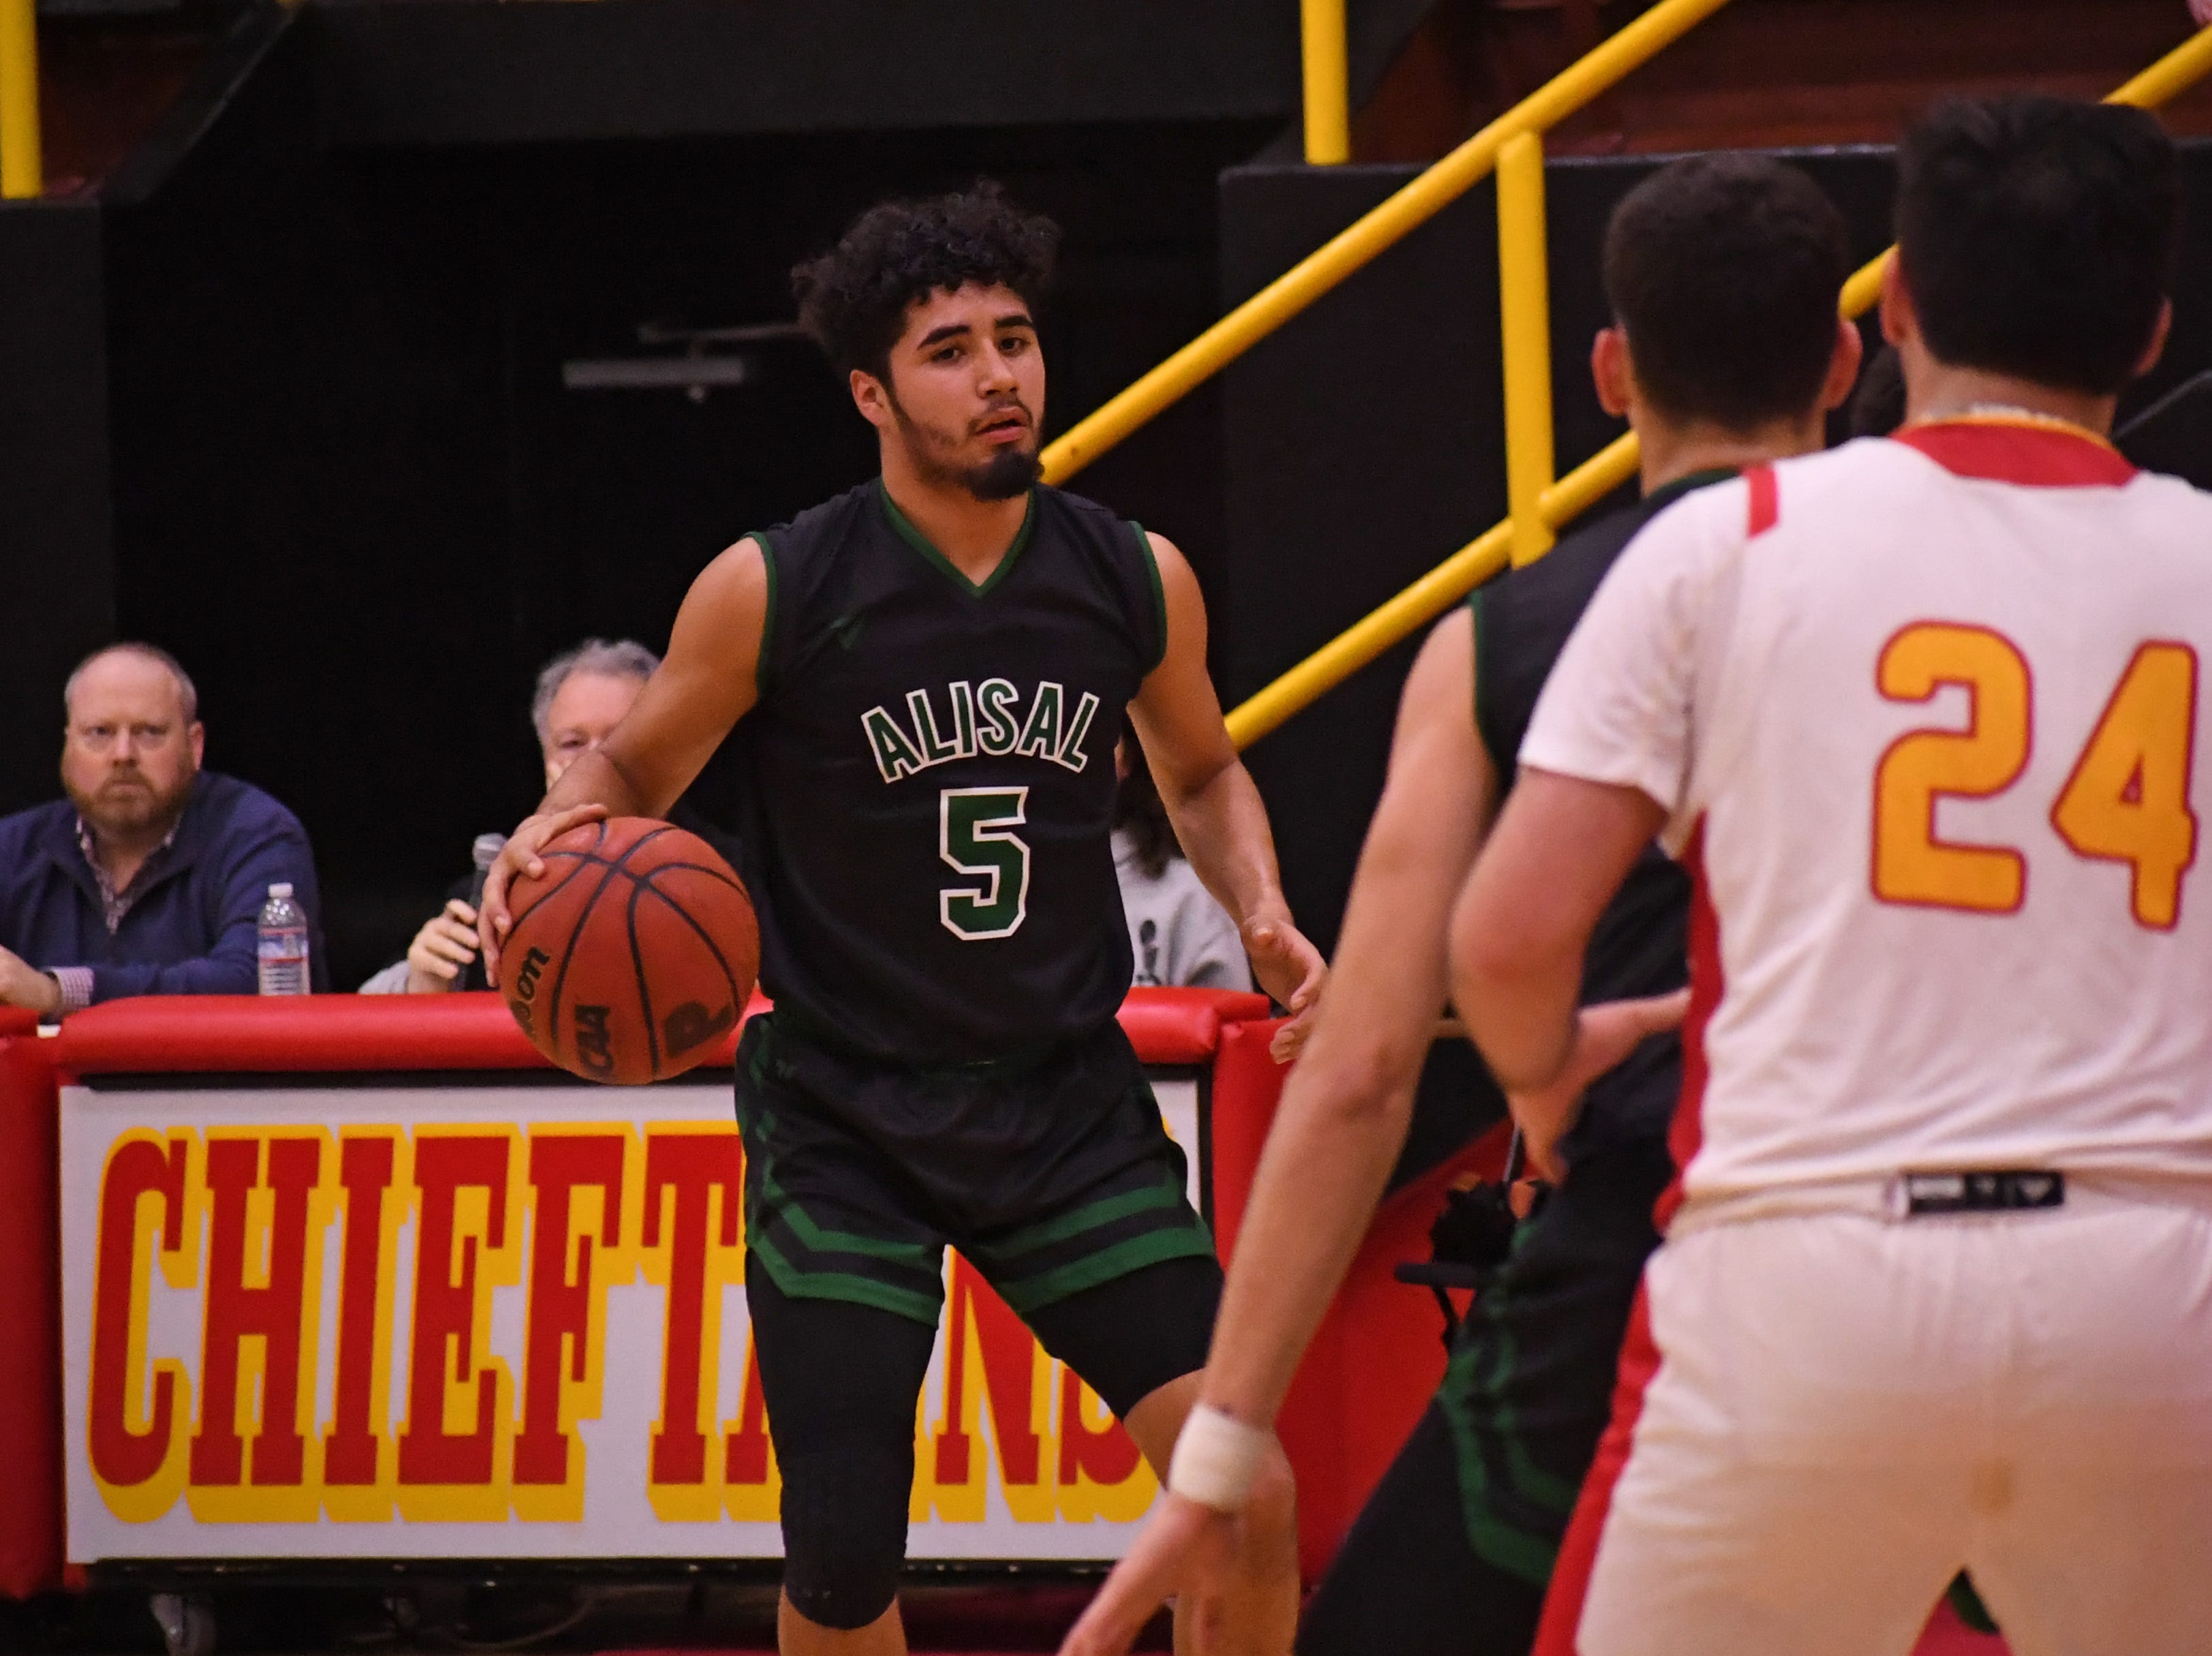 Alisal forward Israel Corona (5) waits for a play to develop before passing.